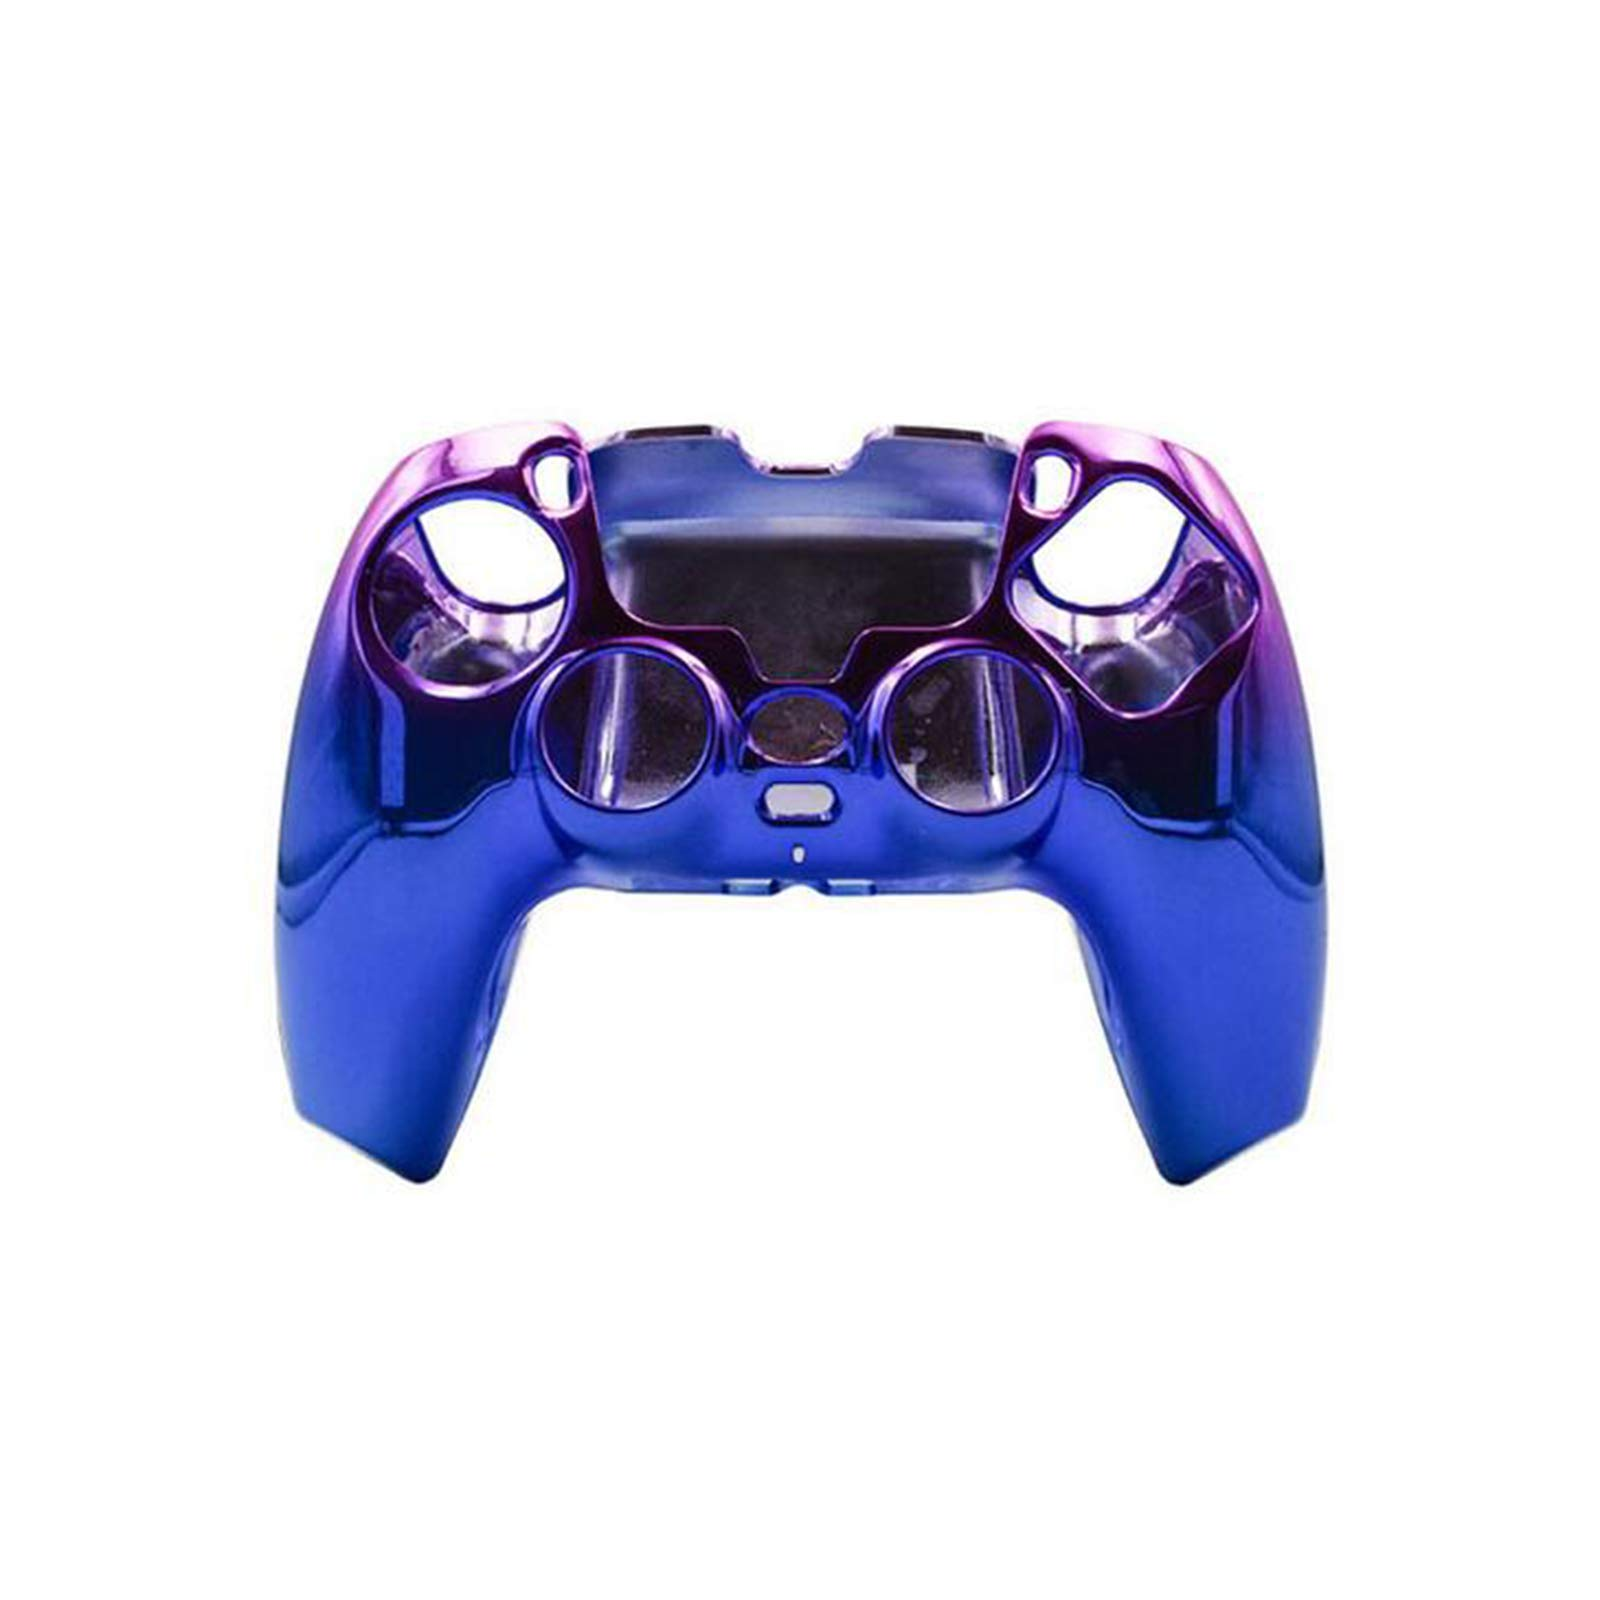 gotor Chrome Housing Shell Case Faceplate Cover for Playstation 5 PS5 Controller (Chrome Blue)